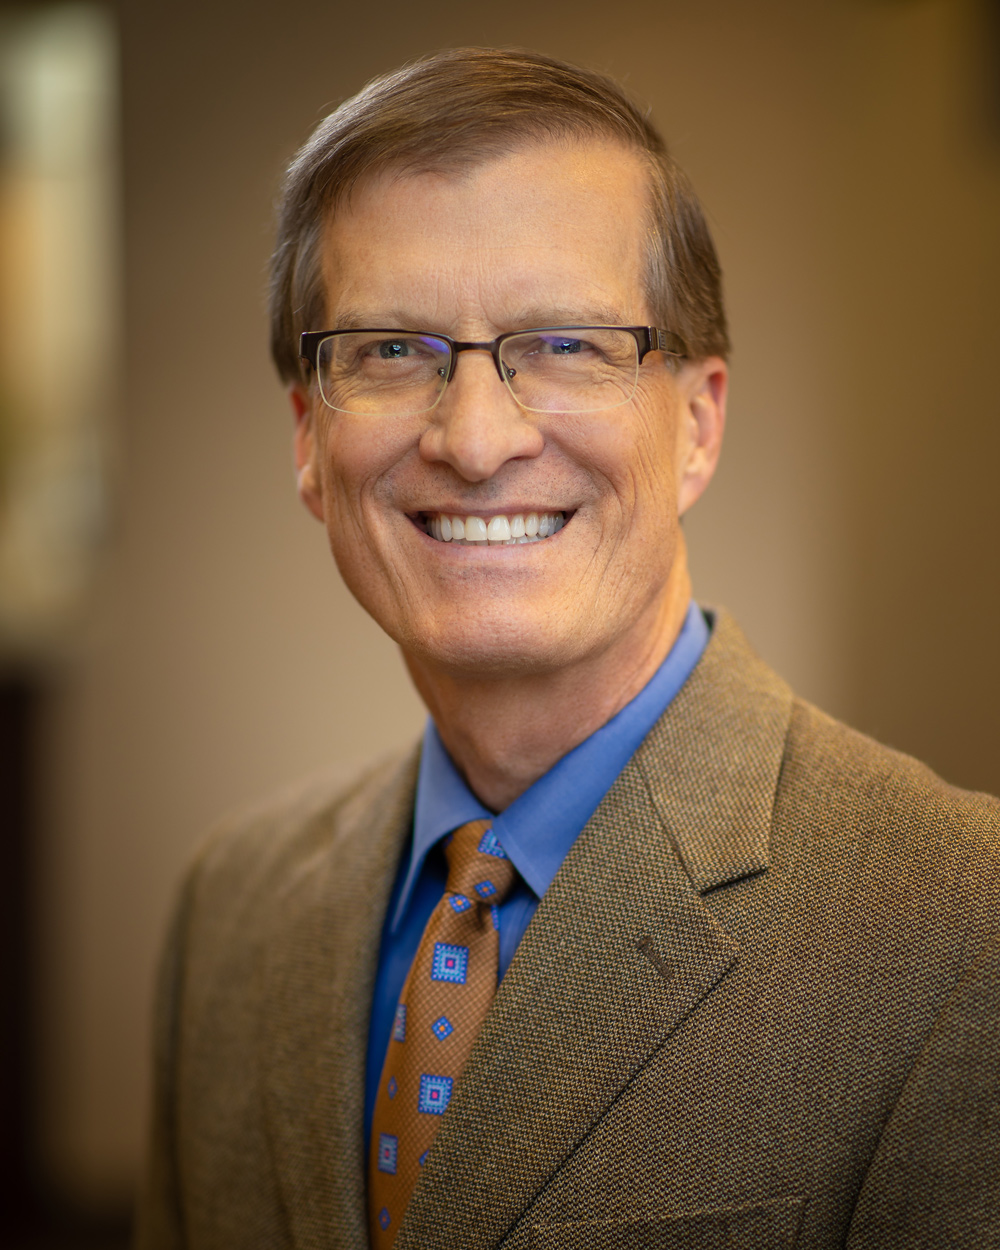 Dr. Steven Lorentzen, DDS - Dr. Lorentzen is renowned for his cosmetic and restorative dentistry. A UofM Alumni his passion is providing unrivaled dentistry using the latest technology and personal artistry.